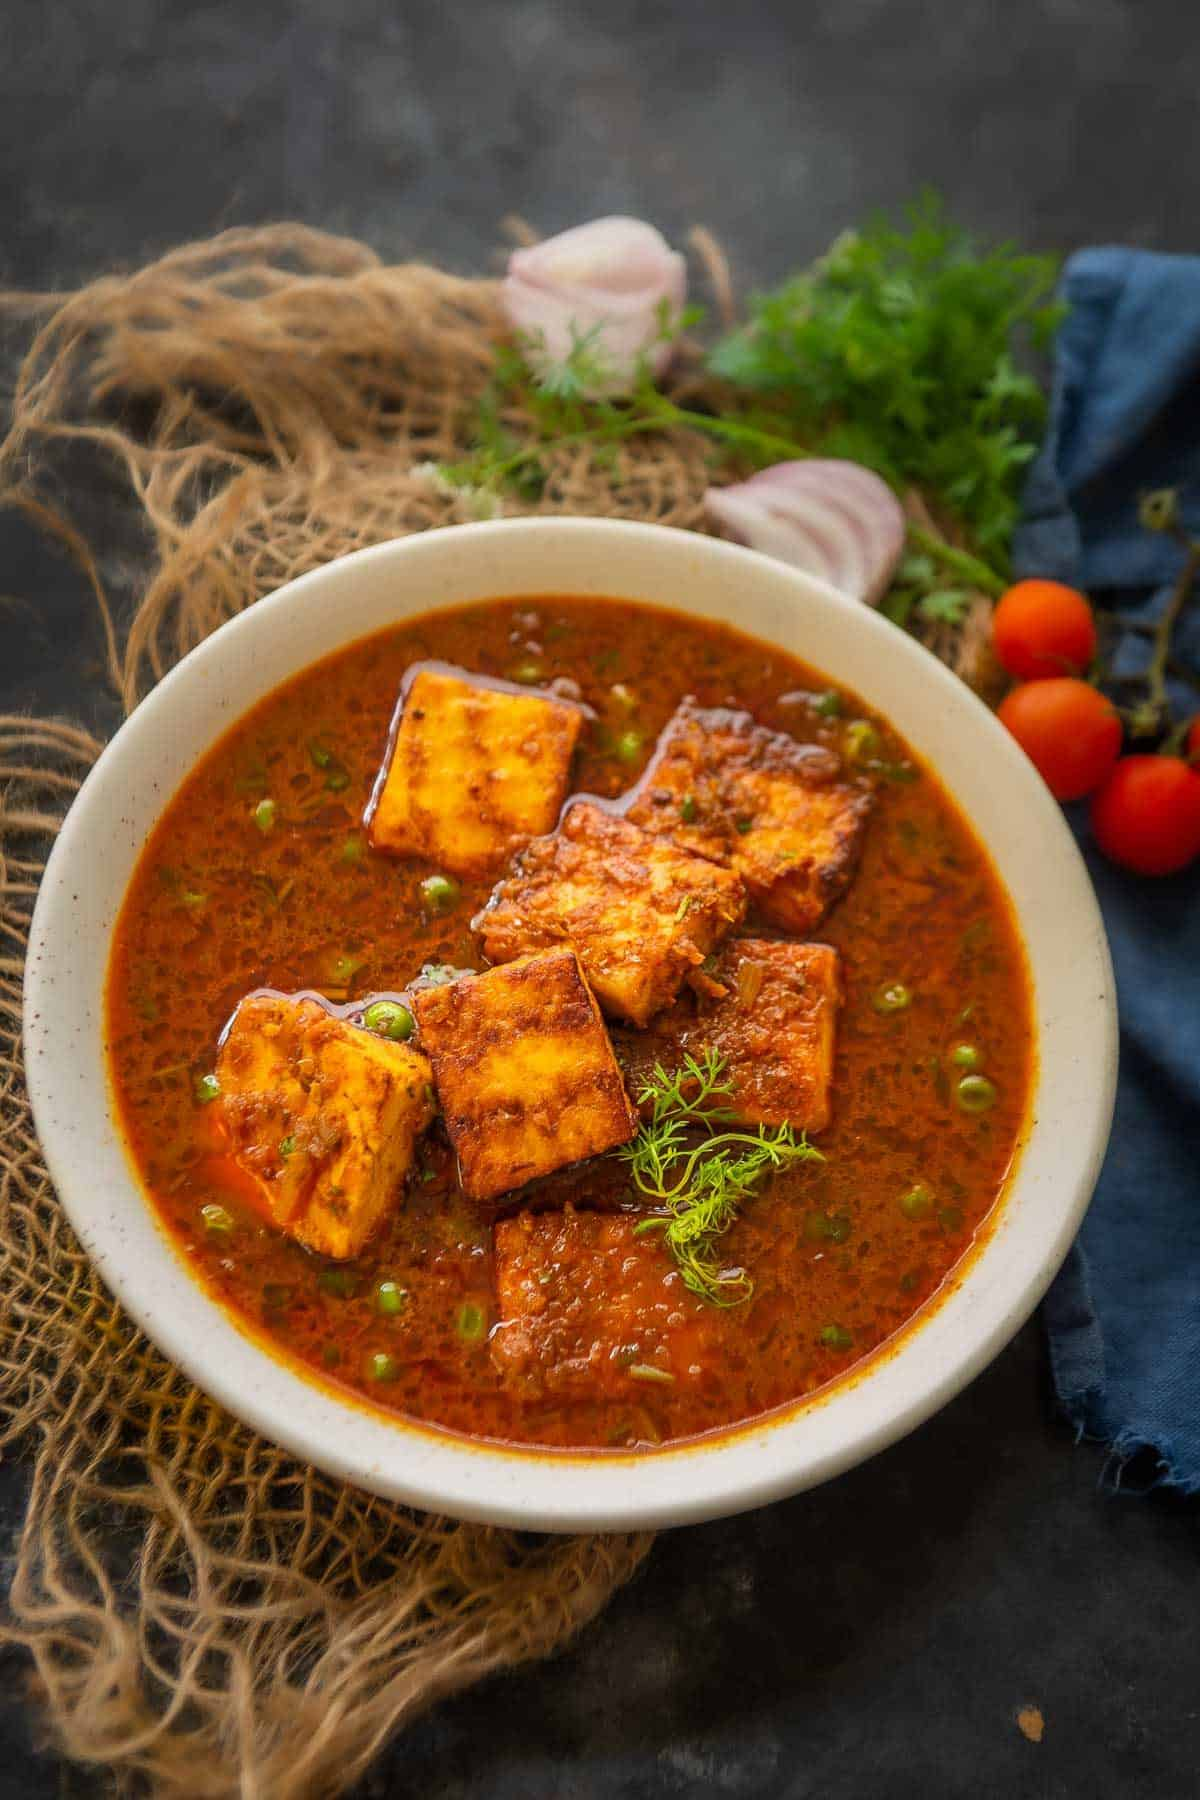 Matar paneer served in a bowl.